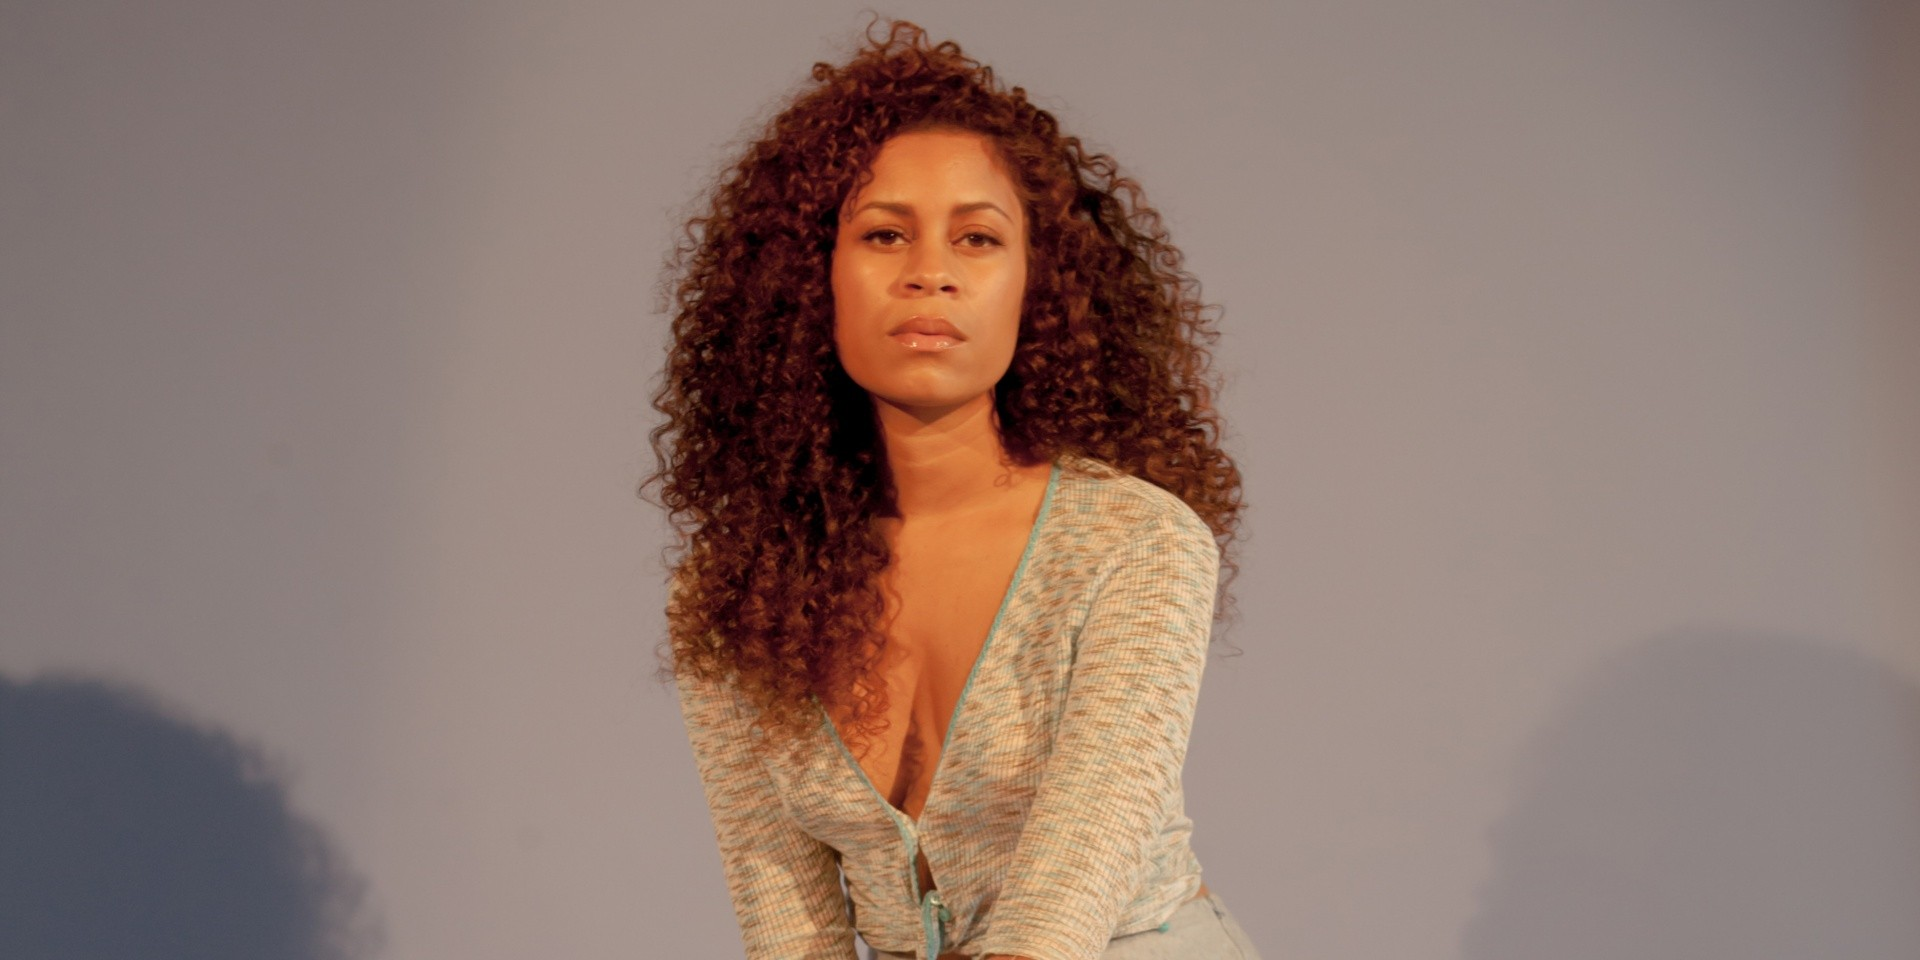 AlunaGeorge to perform in Singapore and Malaysia in April